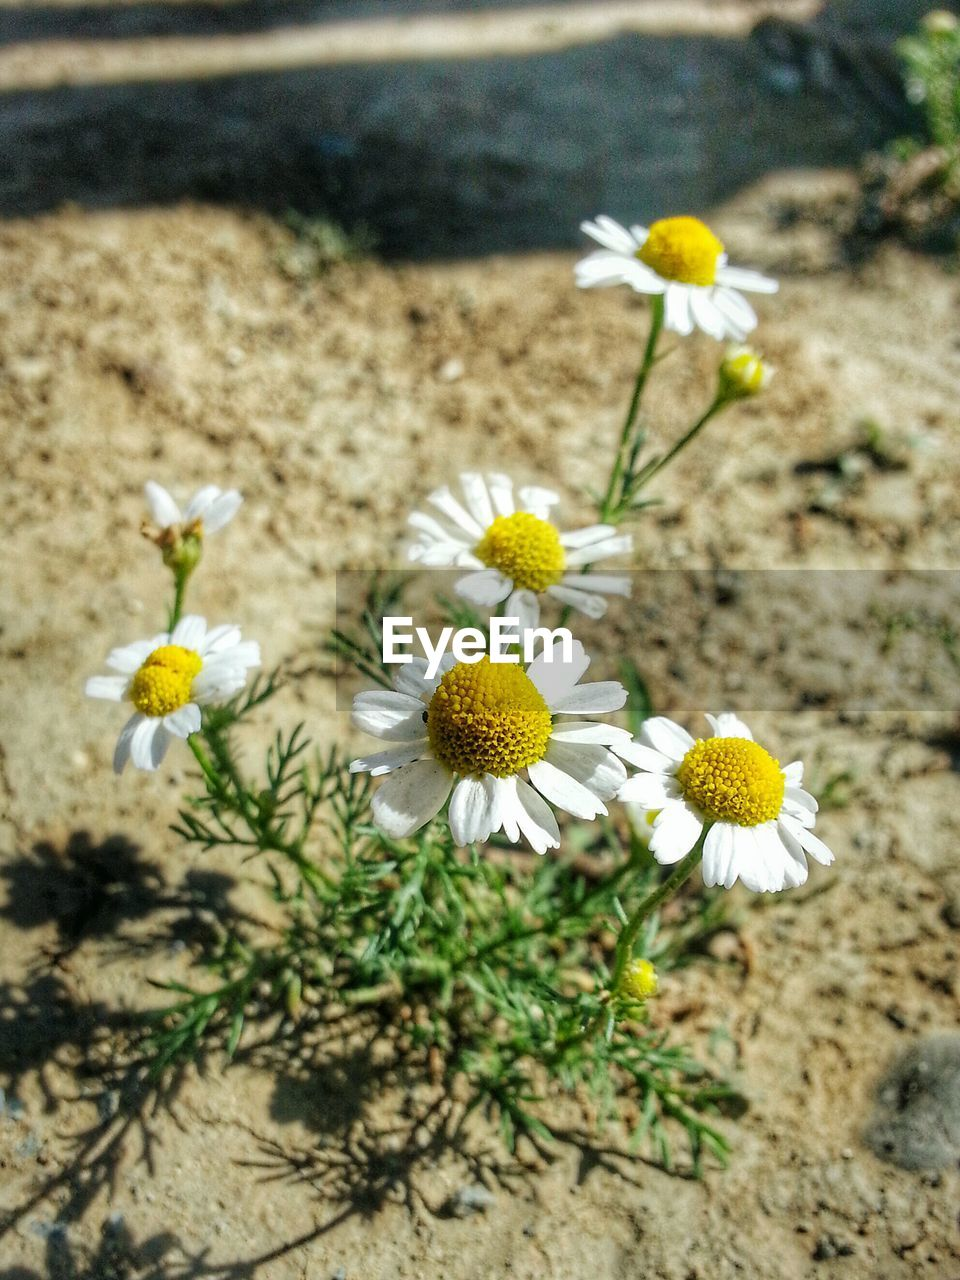 flower, fragility, nature, yellow, freshness, petal, flower head, growth, beauty in nature, no people, day, white color, plant, high angle view, outdoors, blooming, pollen, close-up, focus on foreground